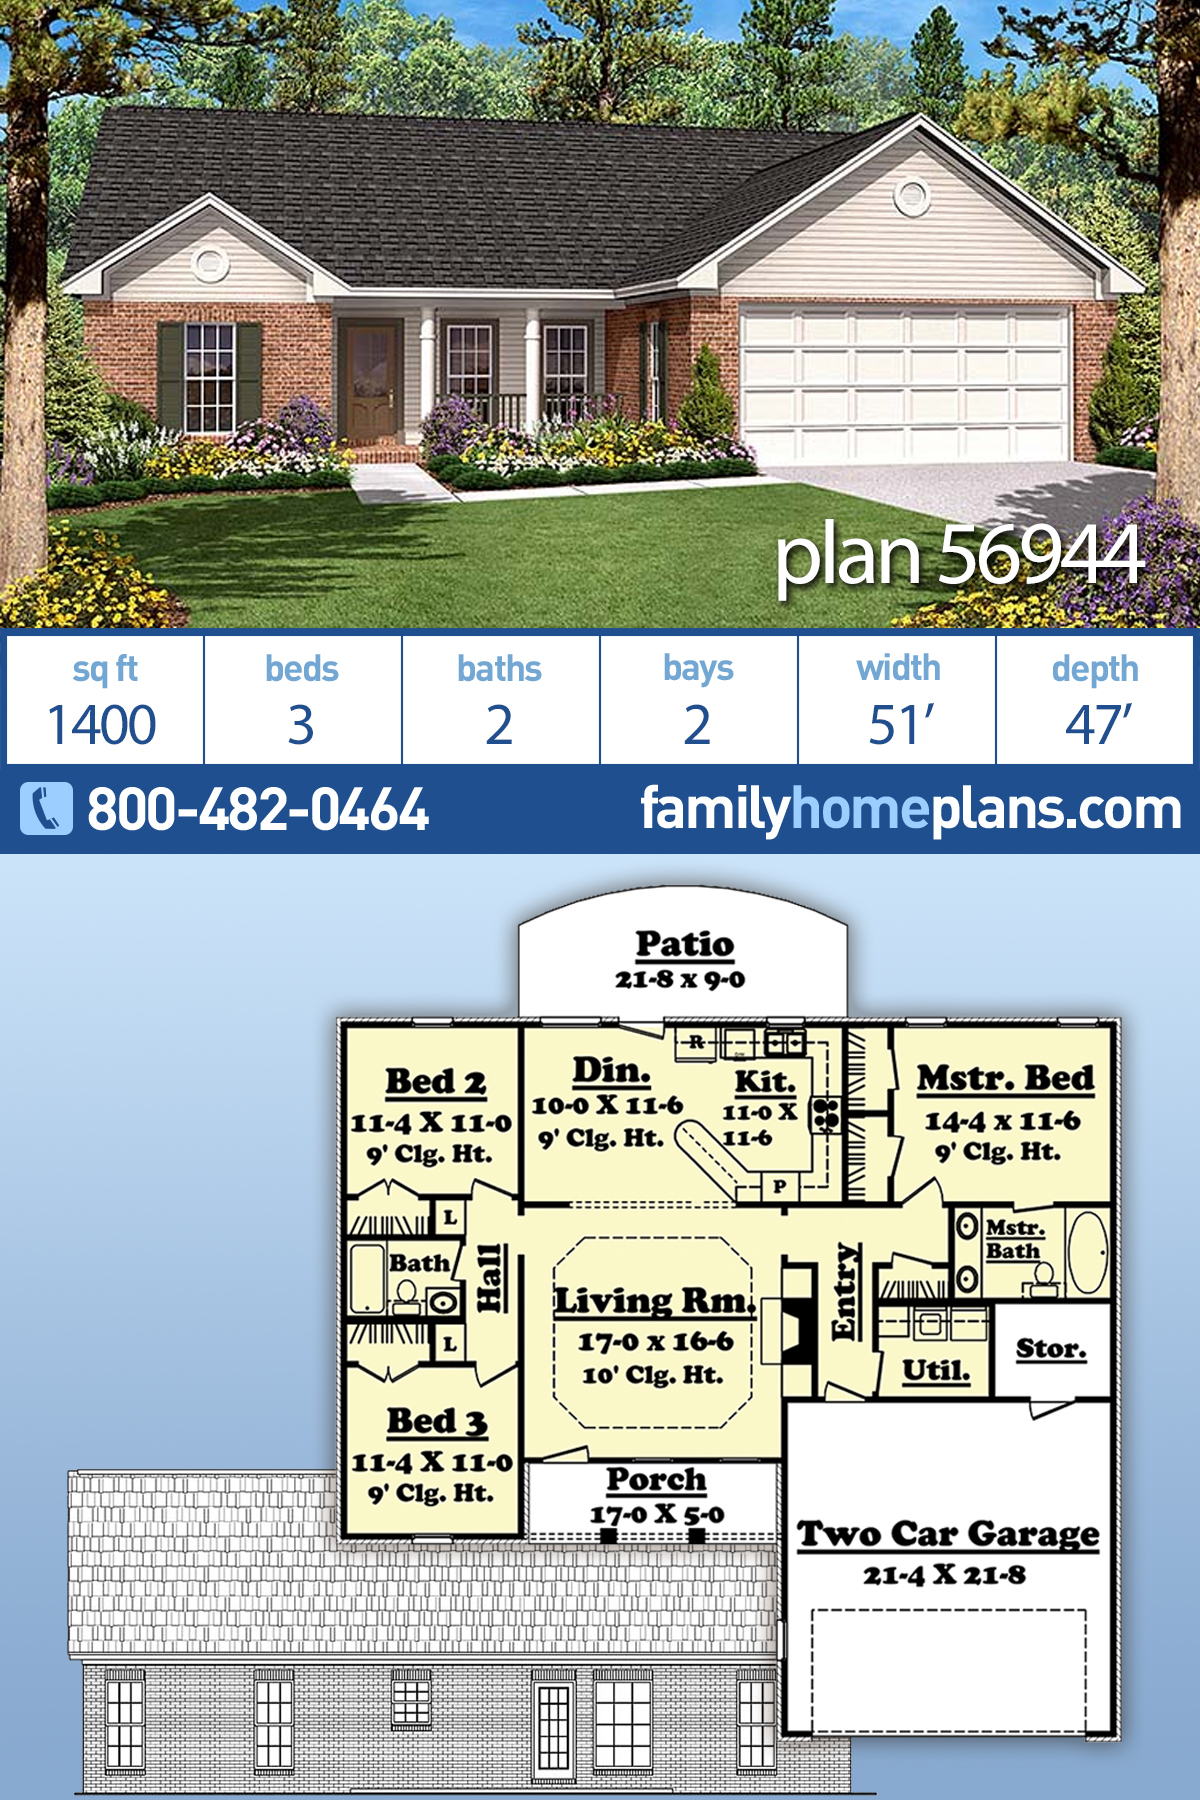 Country, Ranch, Traditional House Plan 56944 with 3 Beds, 2 Baths, 2 Car Garage